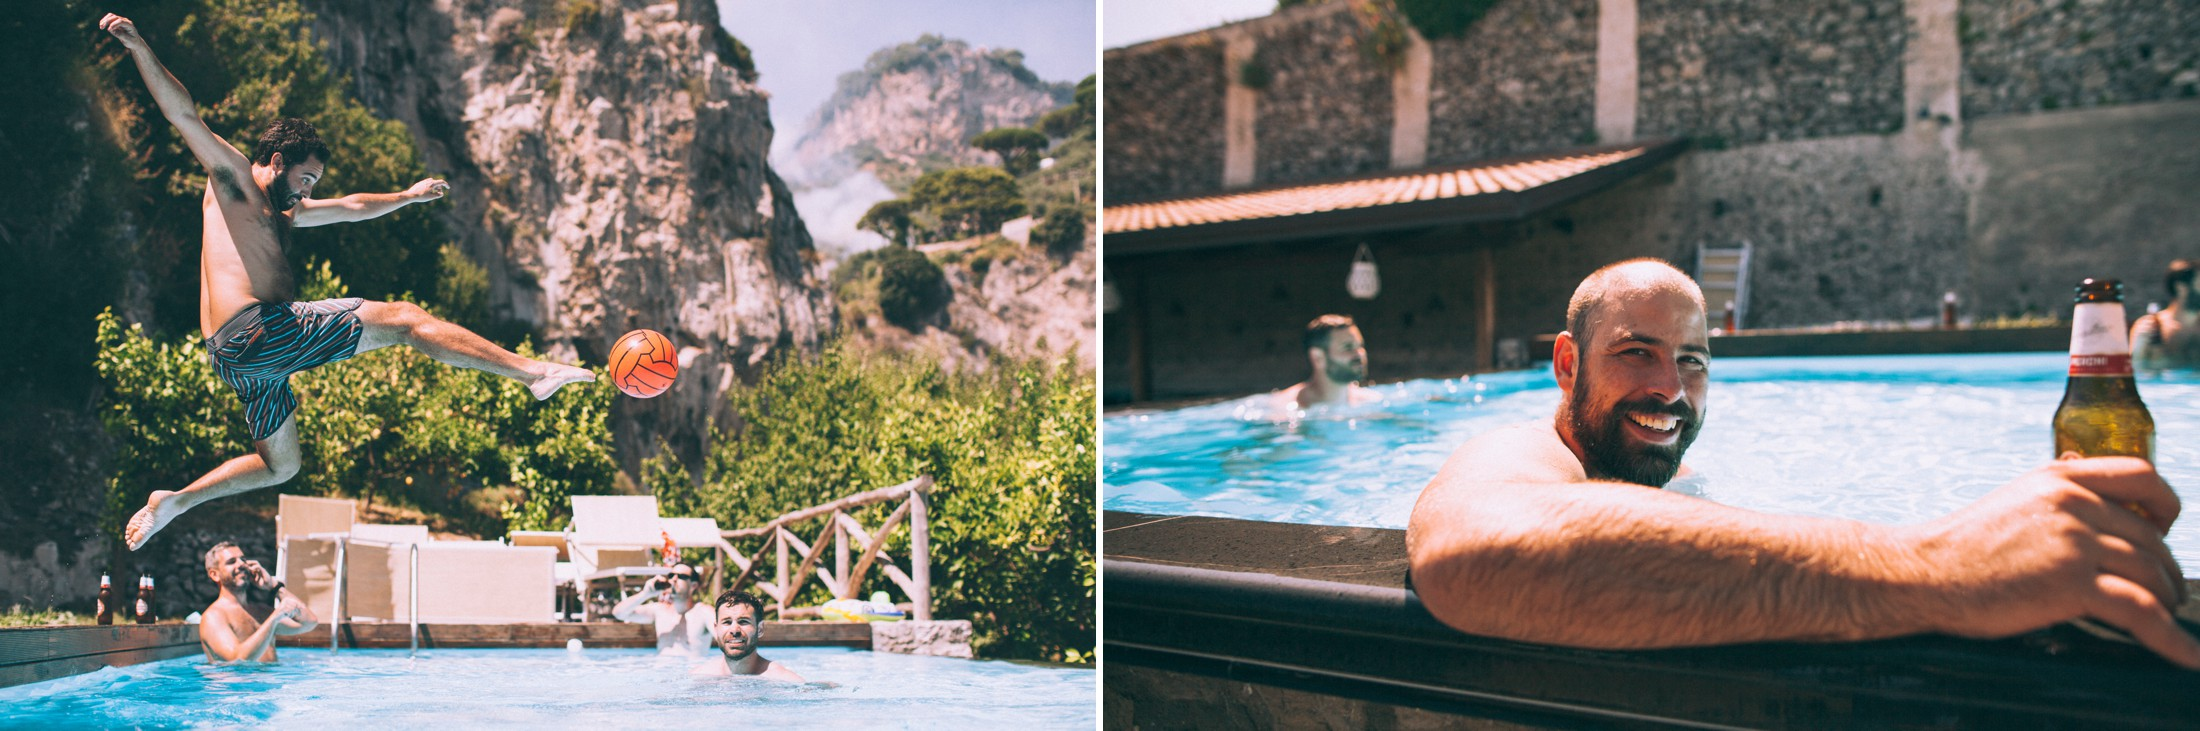 rustic wedding in ravello the groom and his friends having fun in the swimming pool